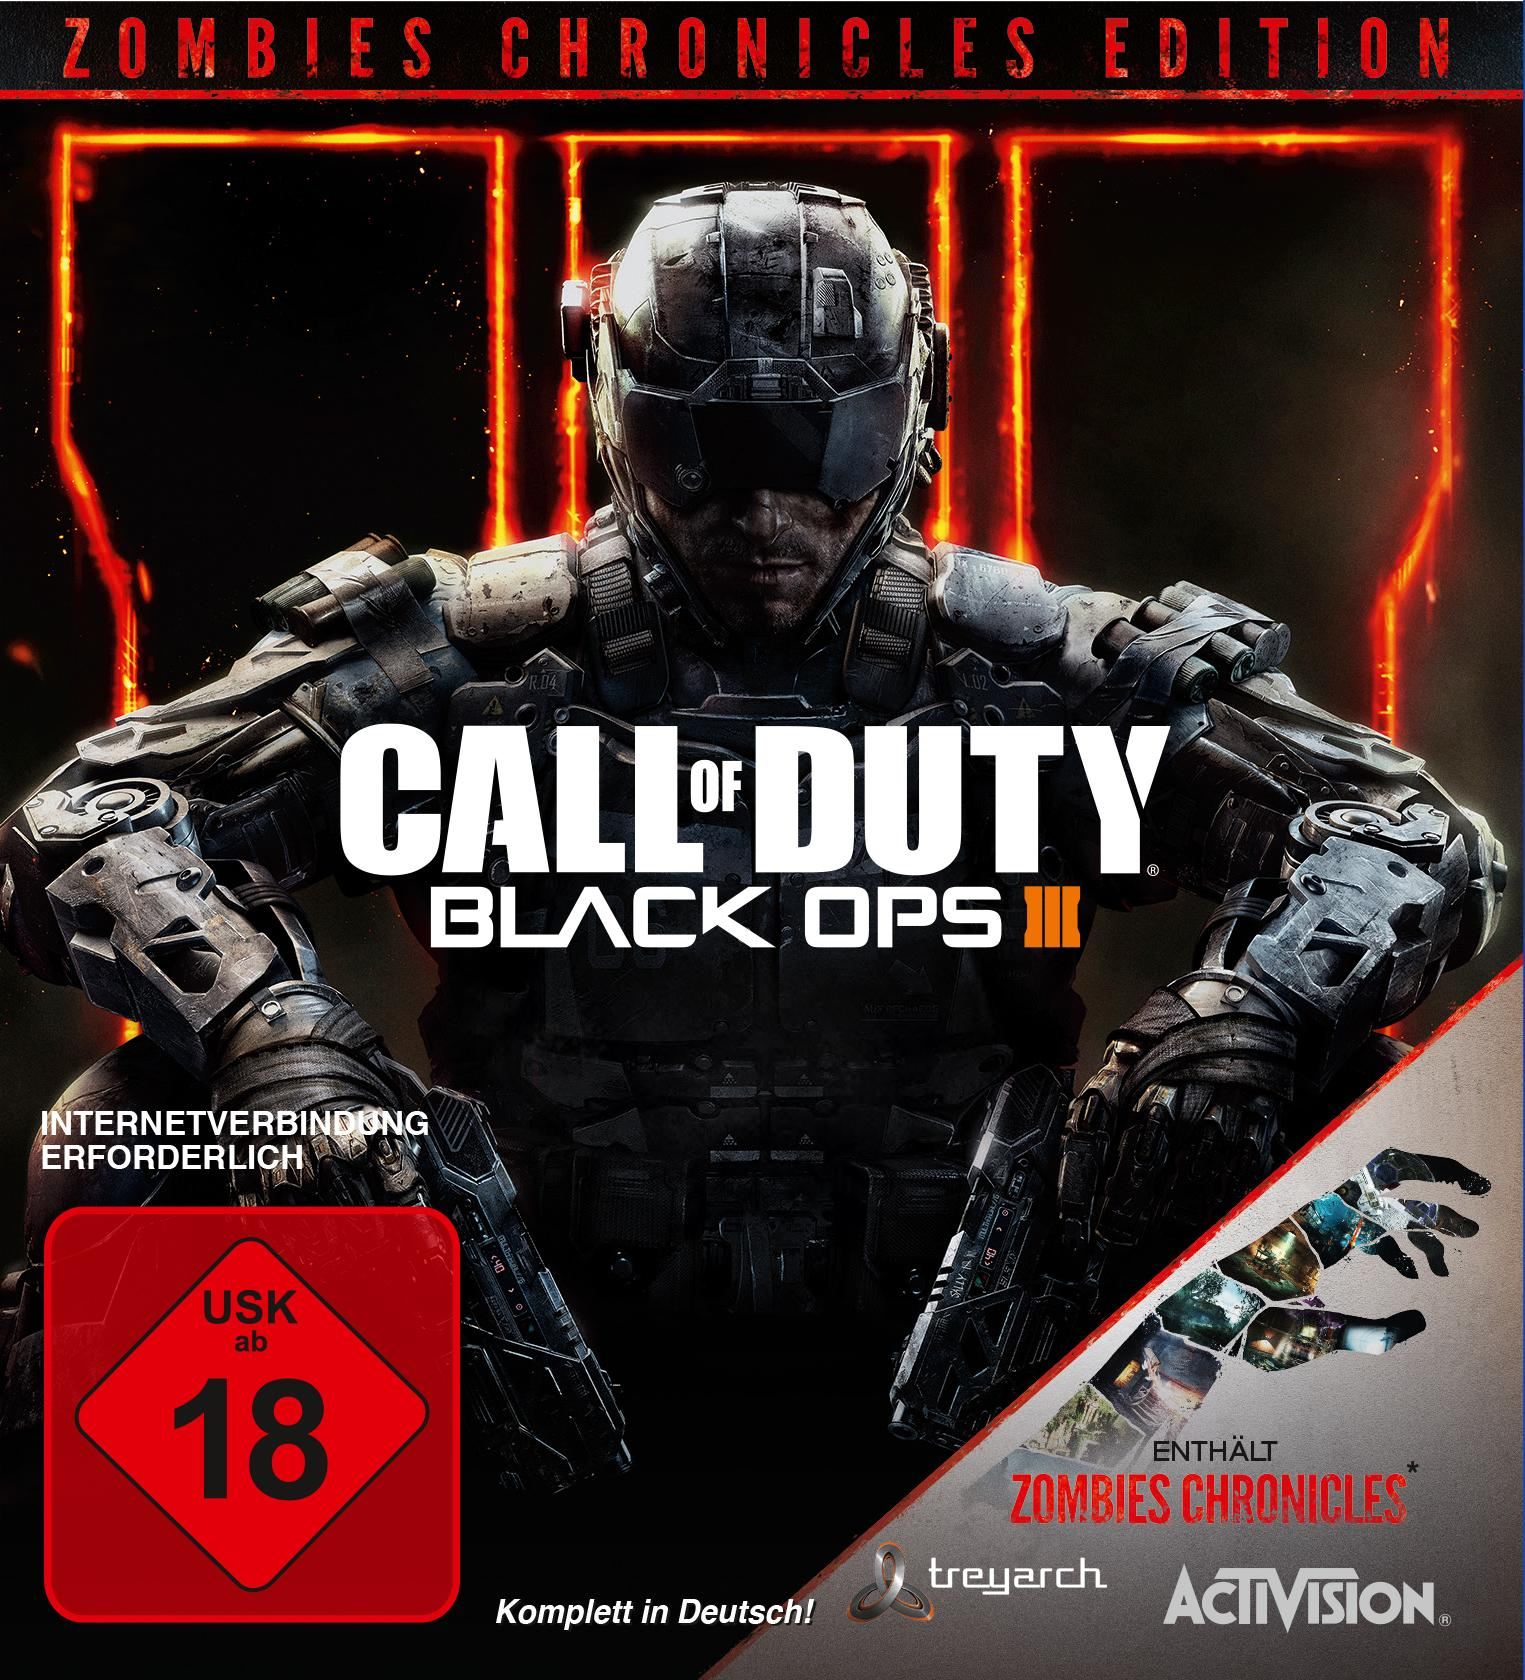 Call of Duty: Black Ops III Zombies Chronicles ...